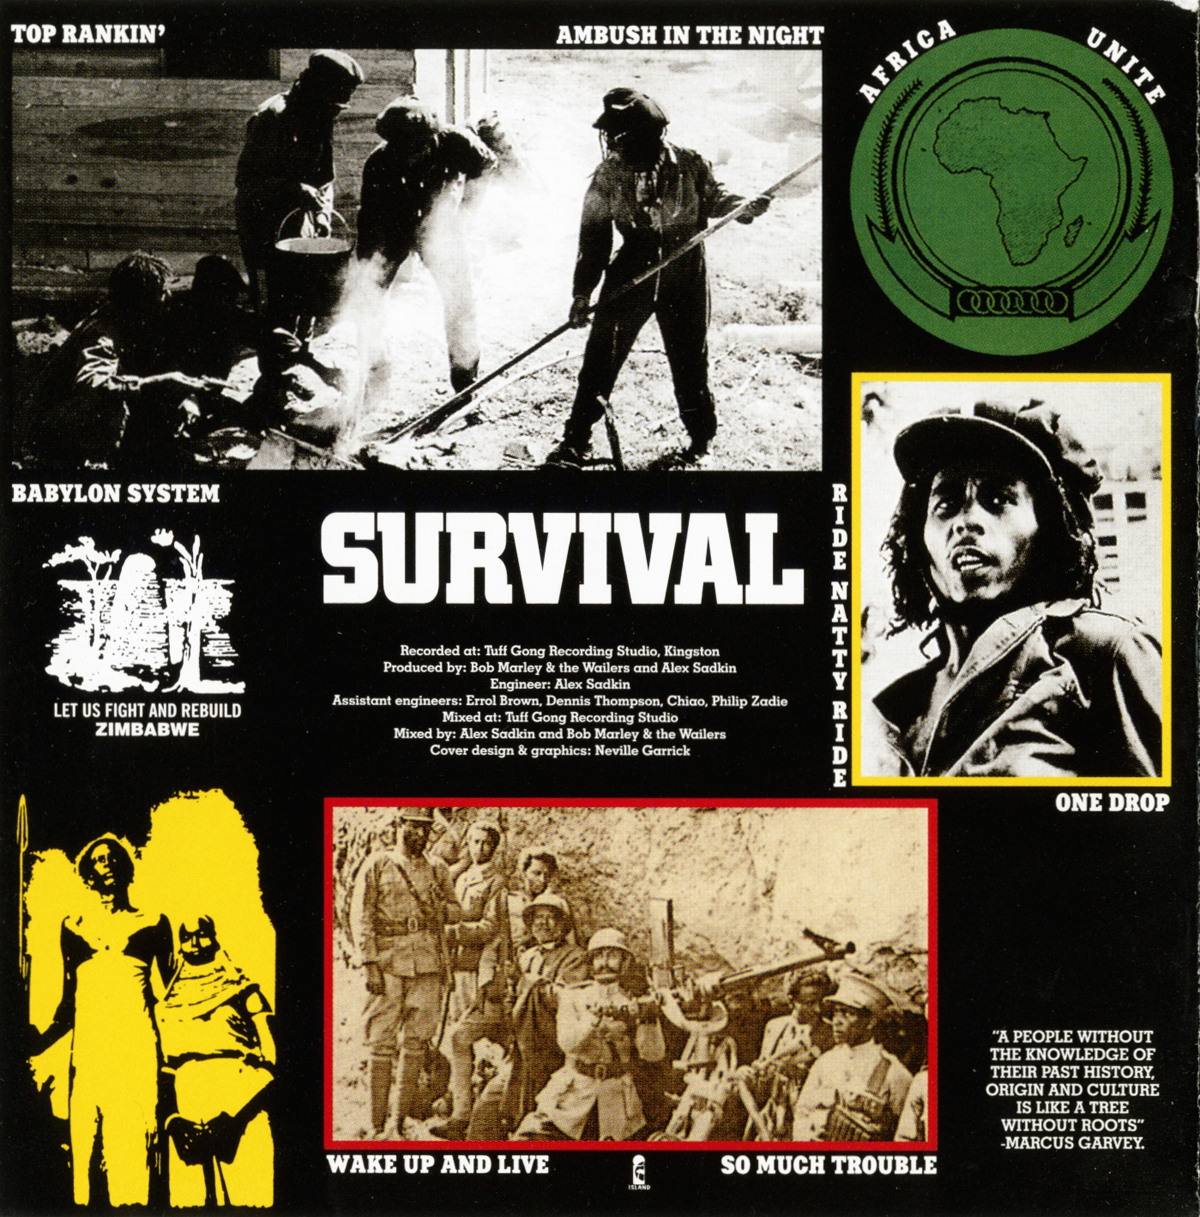 Bob Marley & The Wailers Survival Album Back Cover